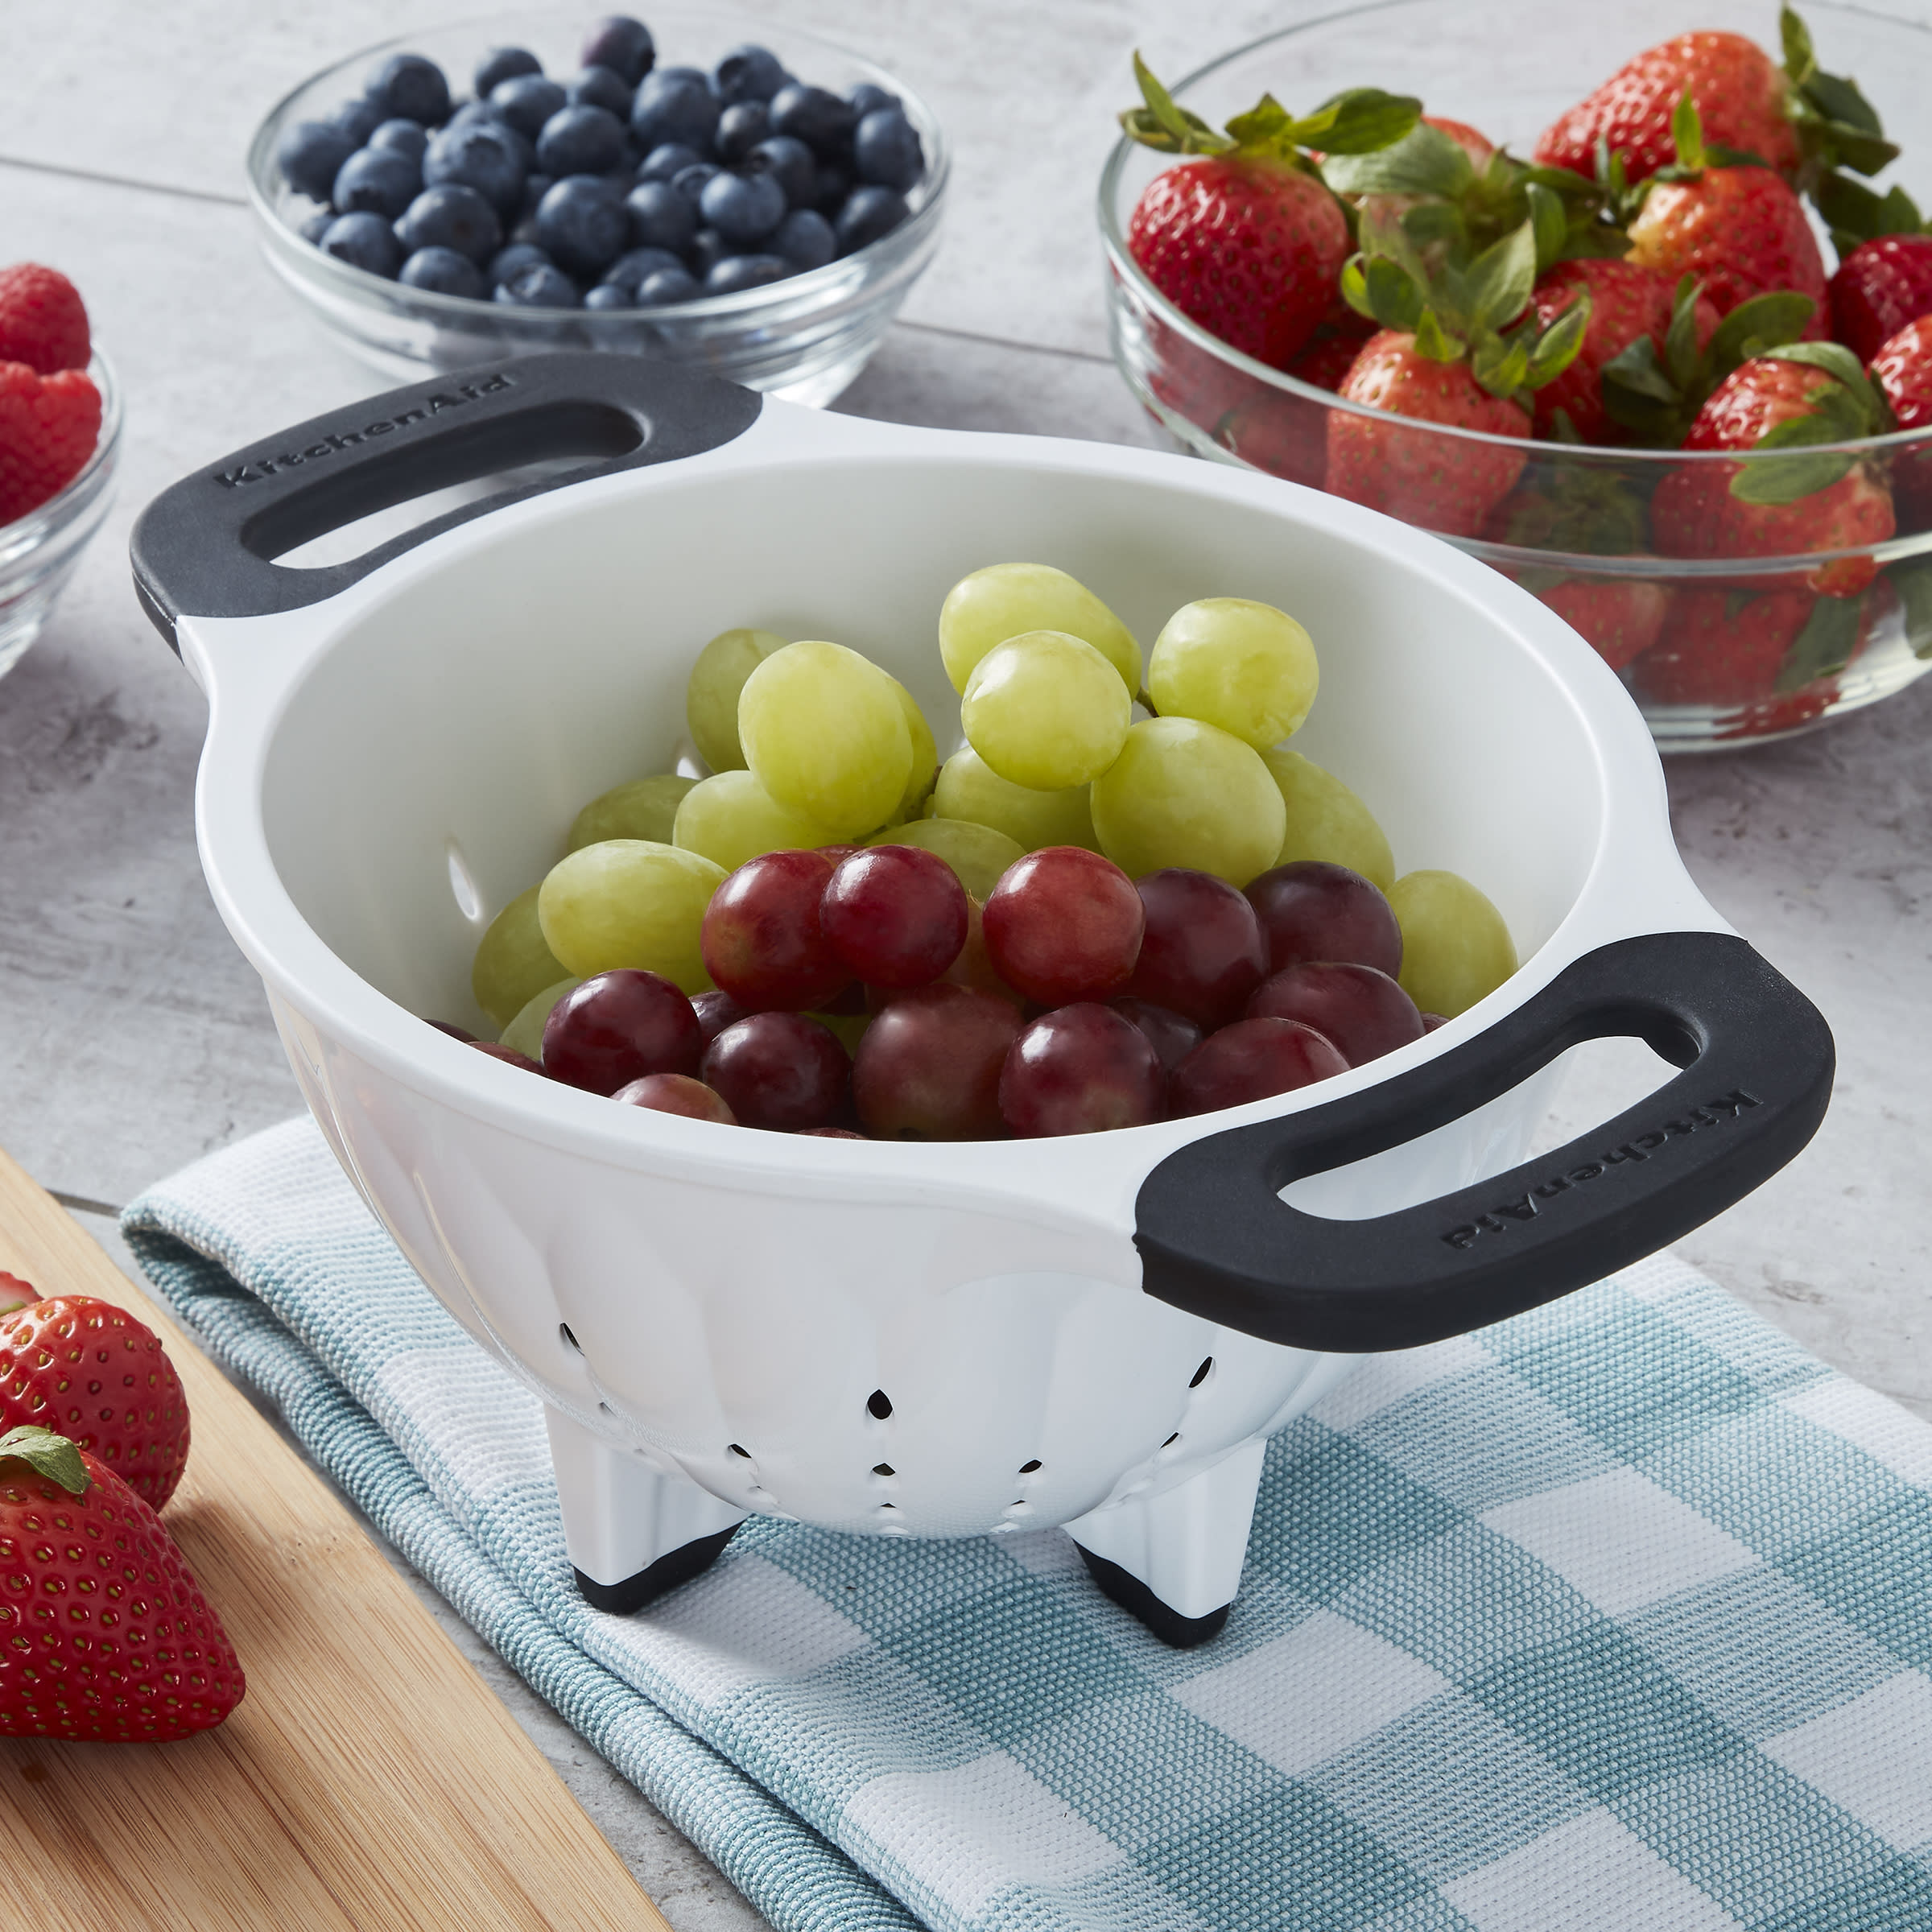 Walmart Launched an Exclusive Line of KitchenAid Tools and ...